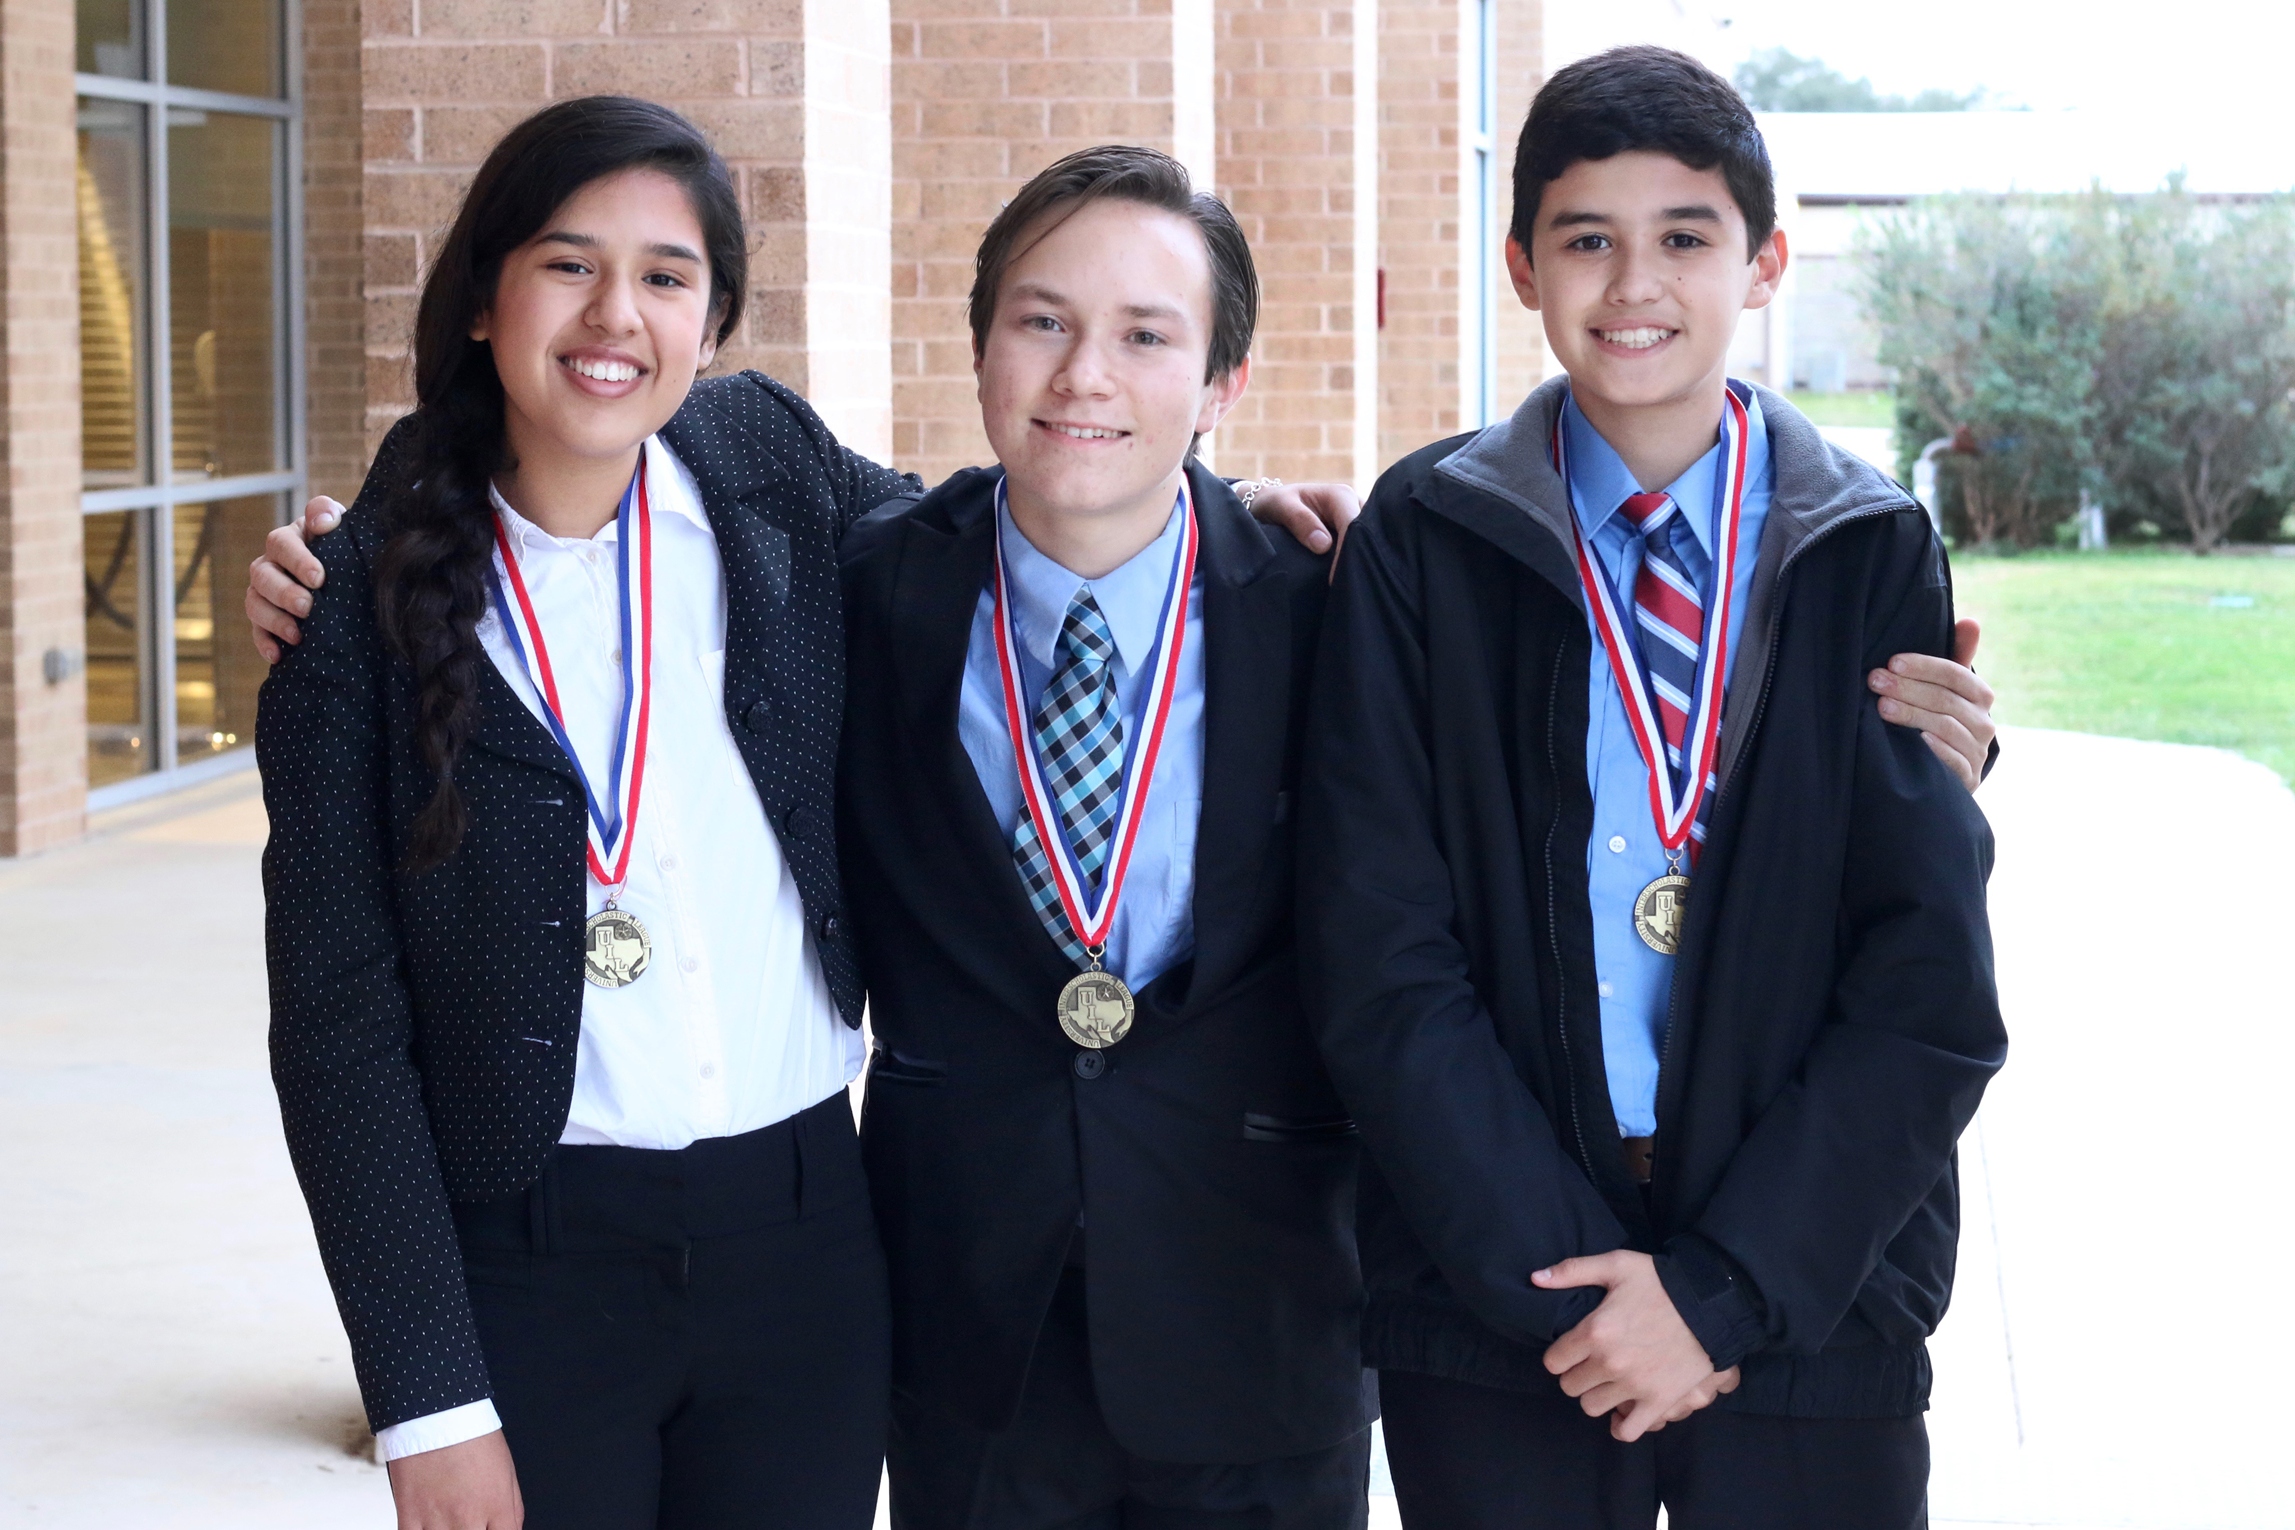 UIL DEBATE TEAM